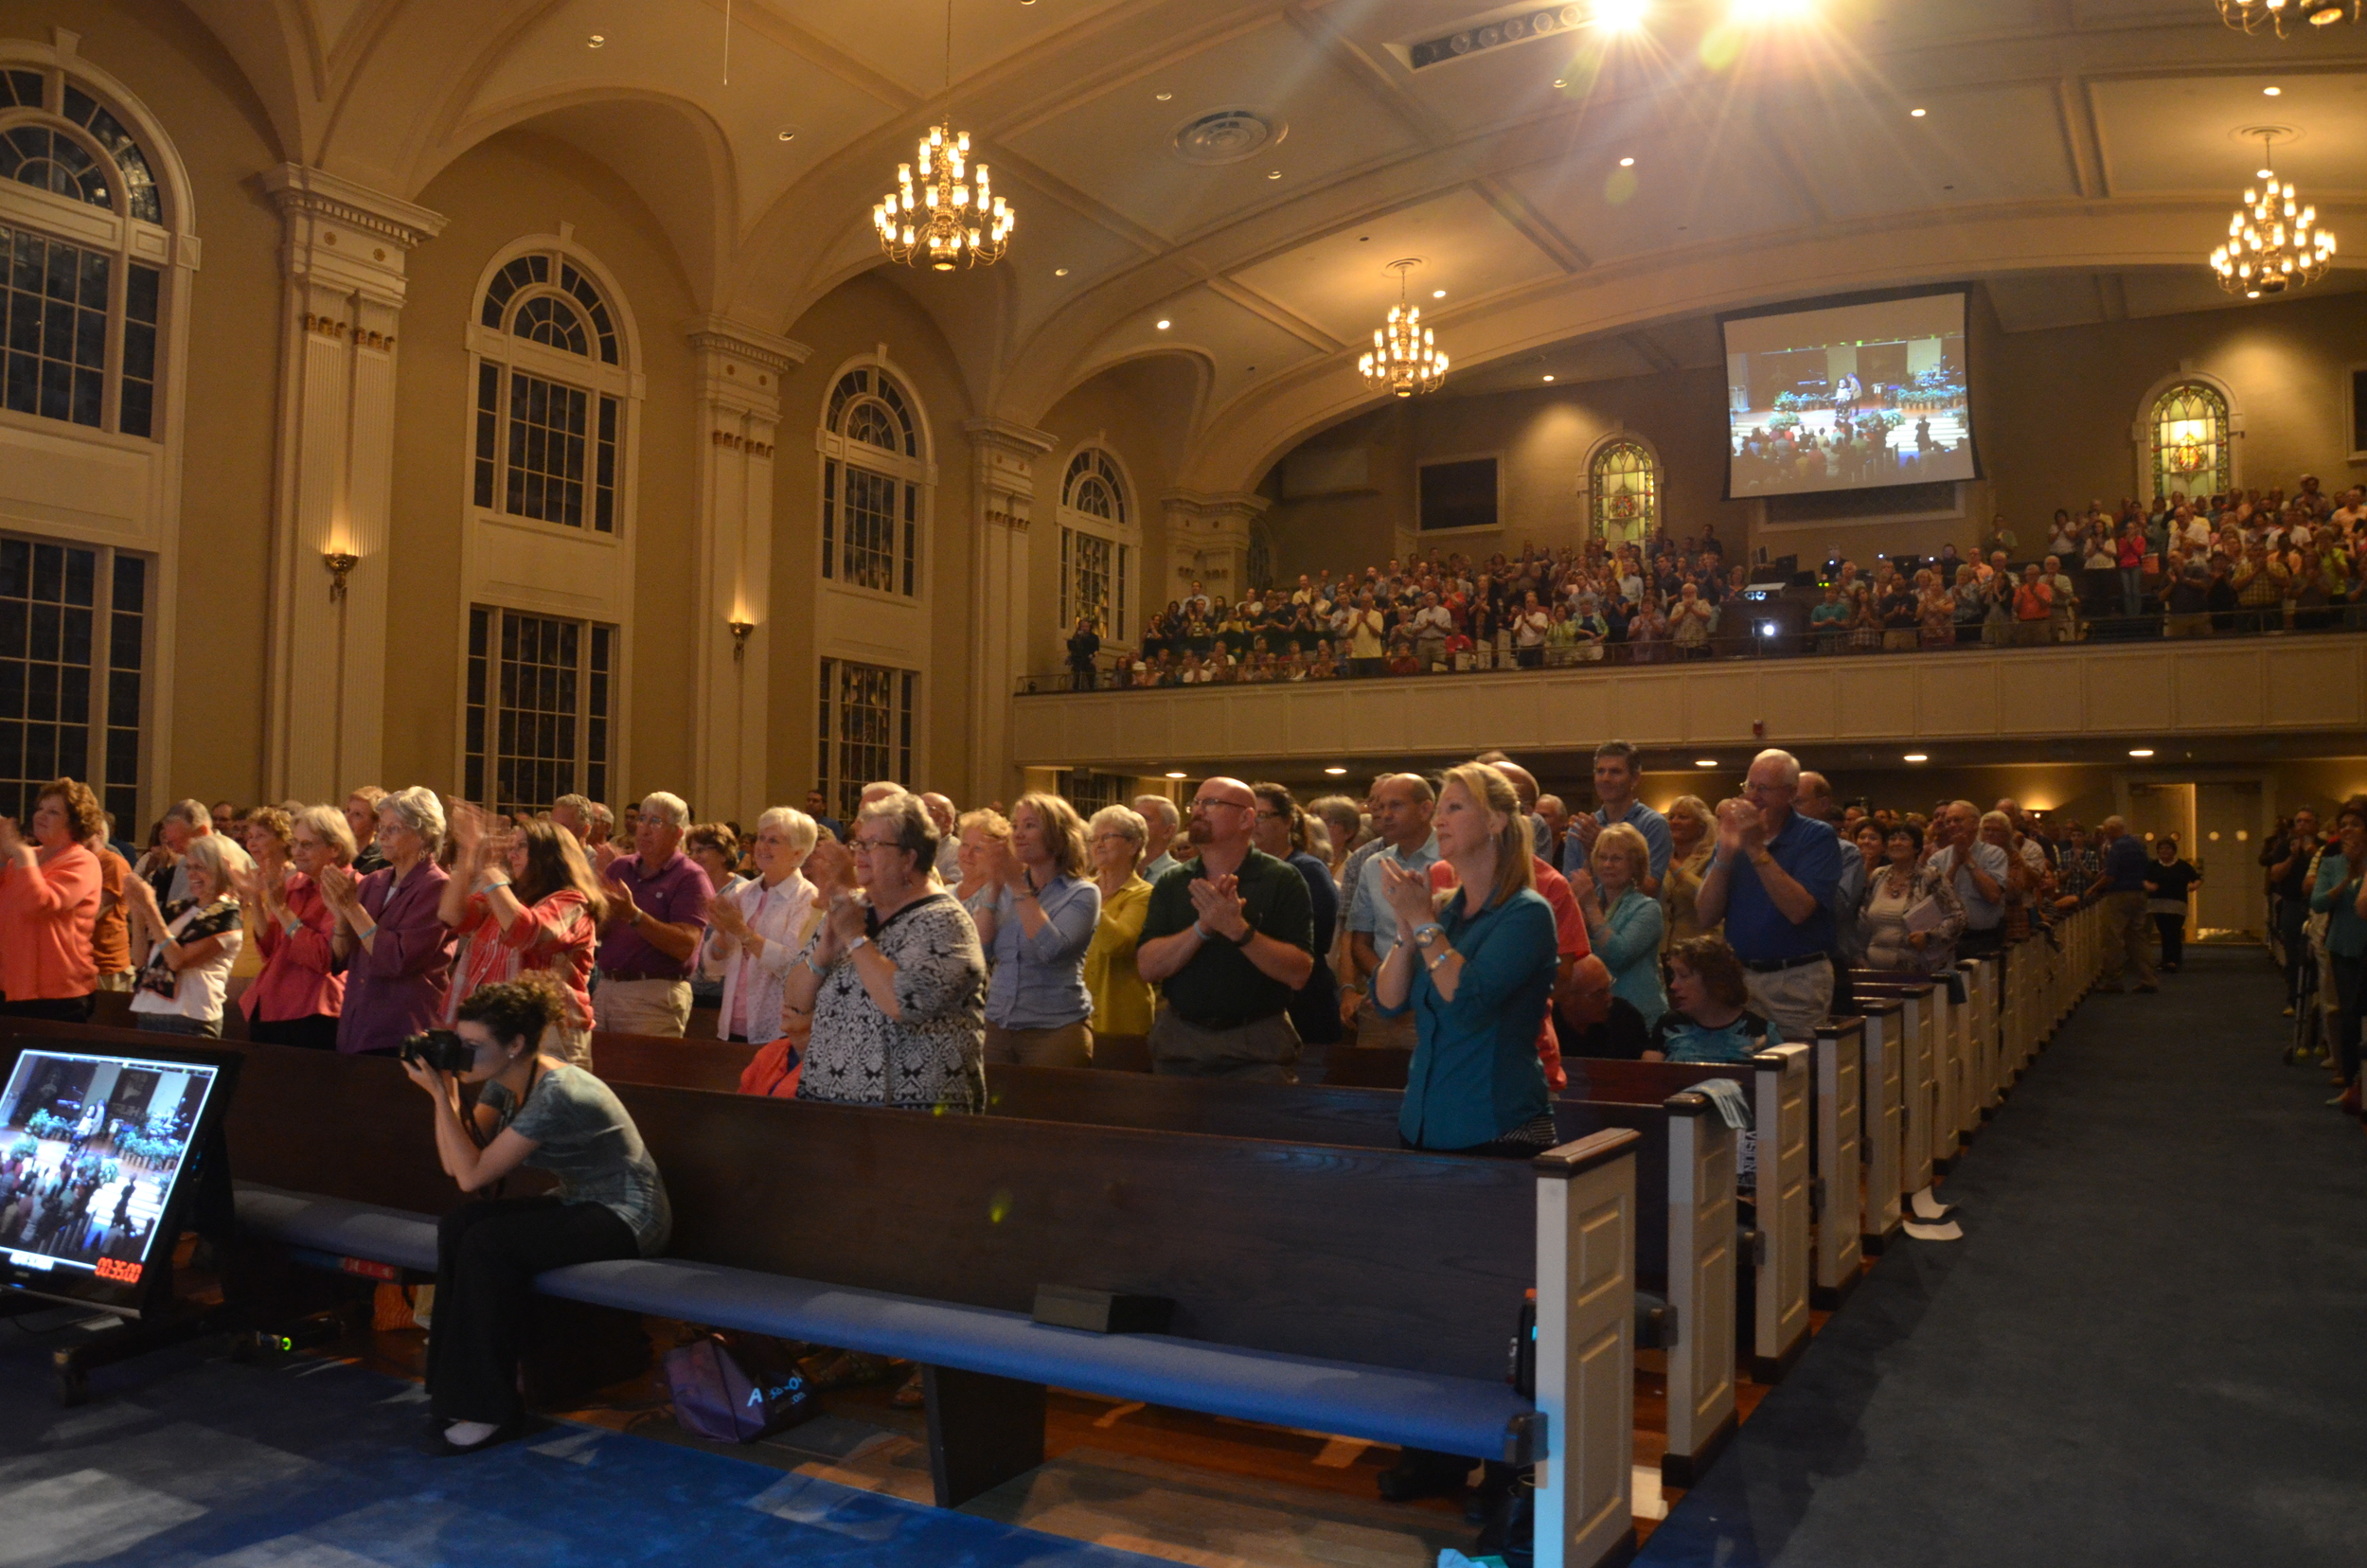 Worshippers attend the TNG conference, where scholars presented their research and the most up-to-date evidence for Christianity September 5-6 in Spartanburg.